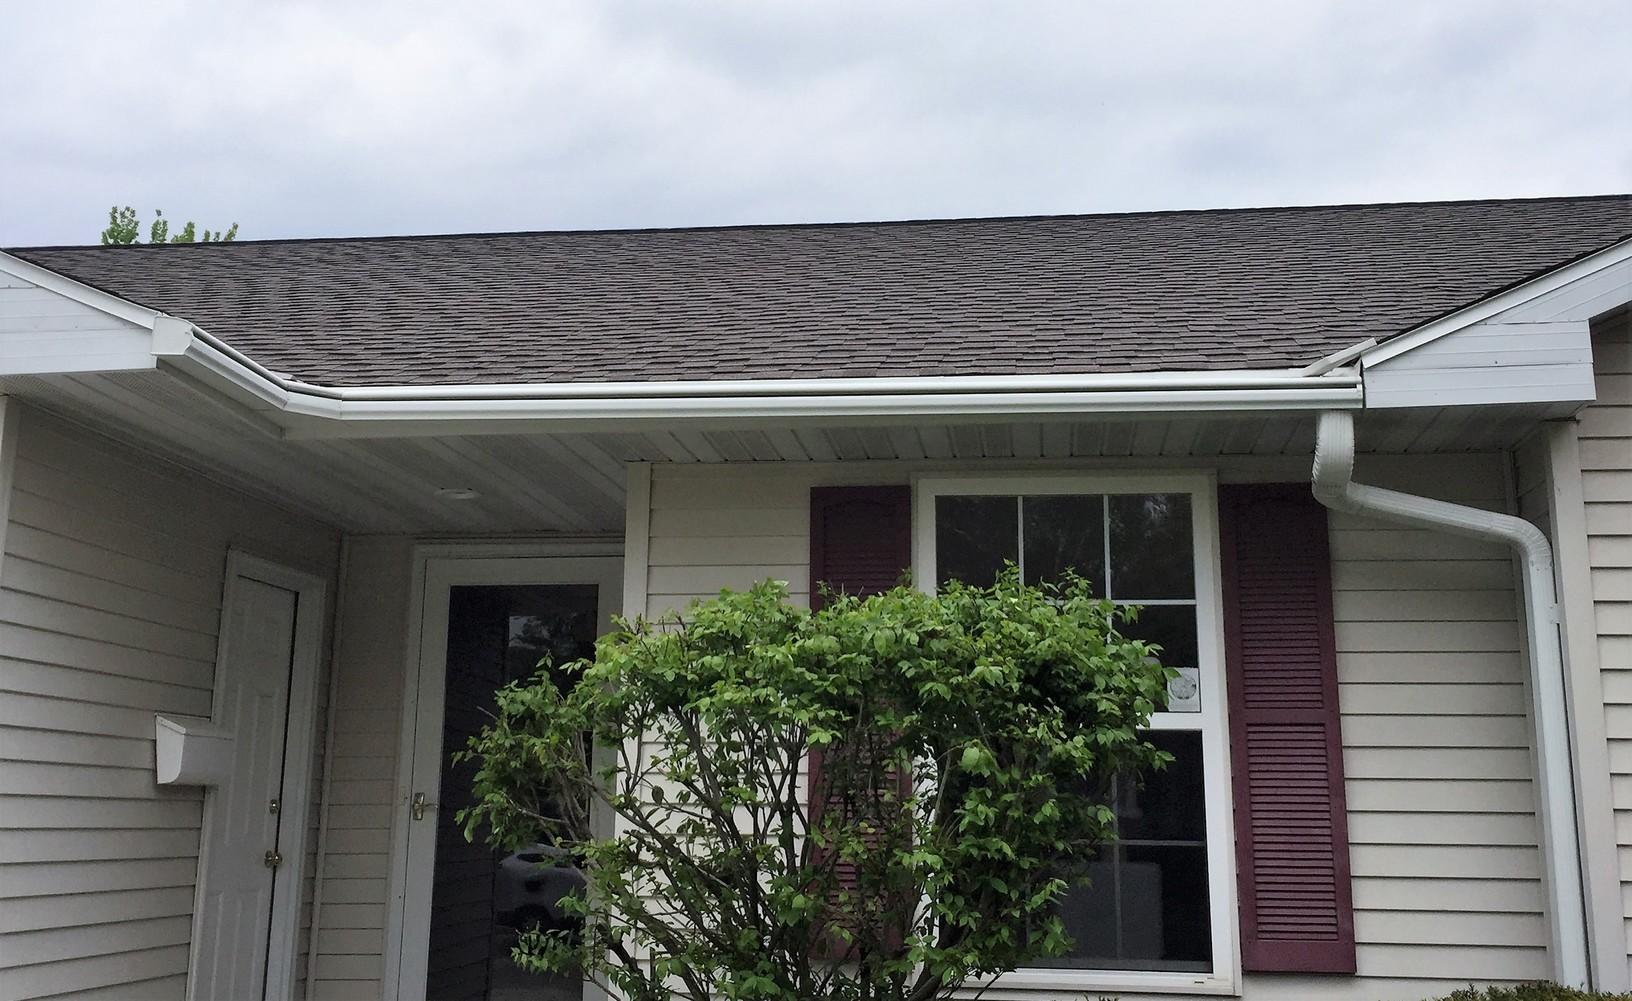 New GAF Timberline Roof and LeafGuard Gutters Installed on home in Allouez, WI - After Photo